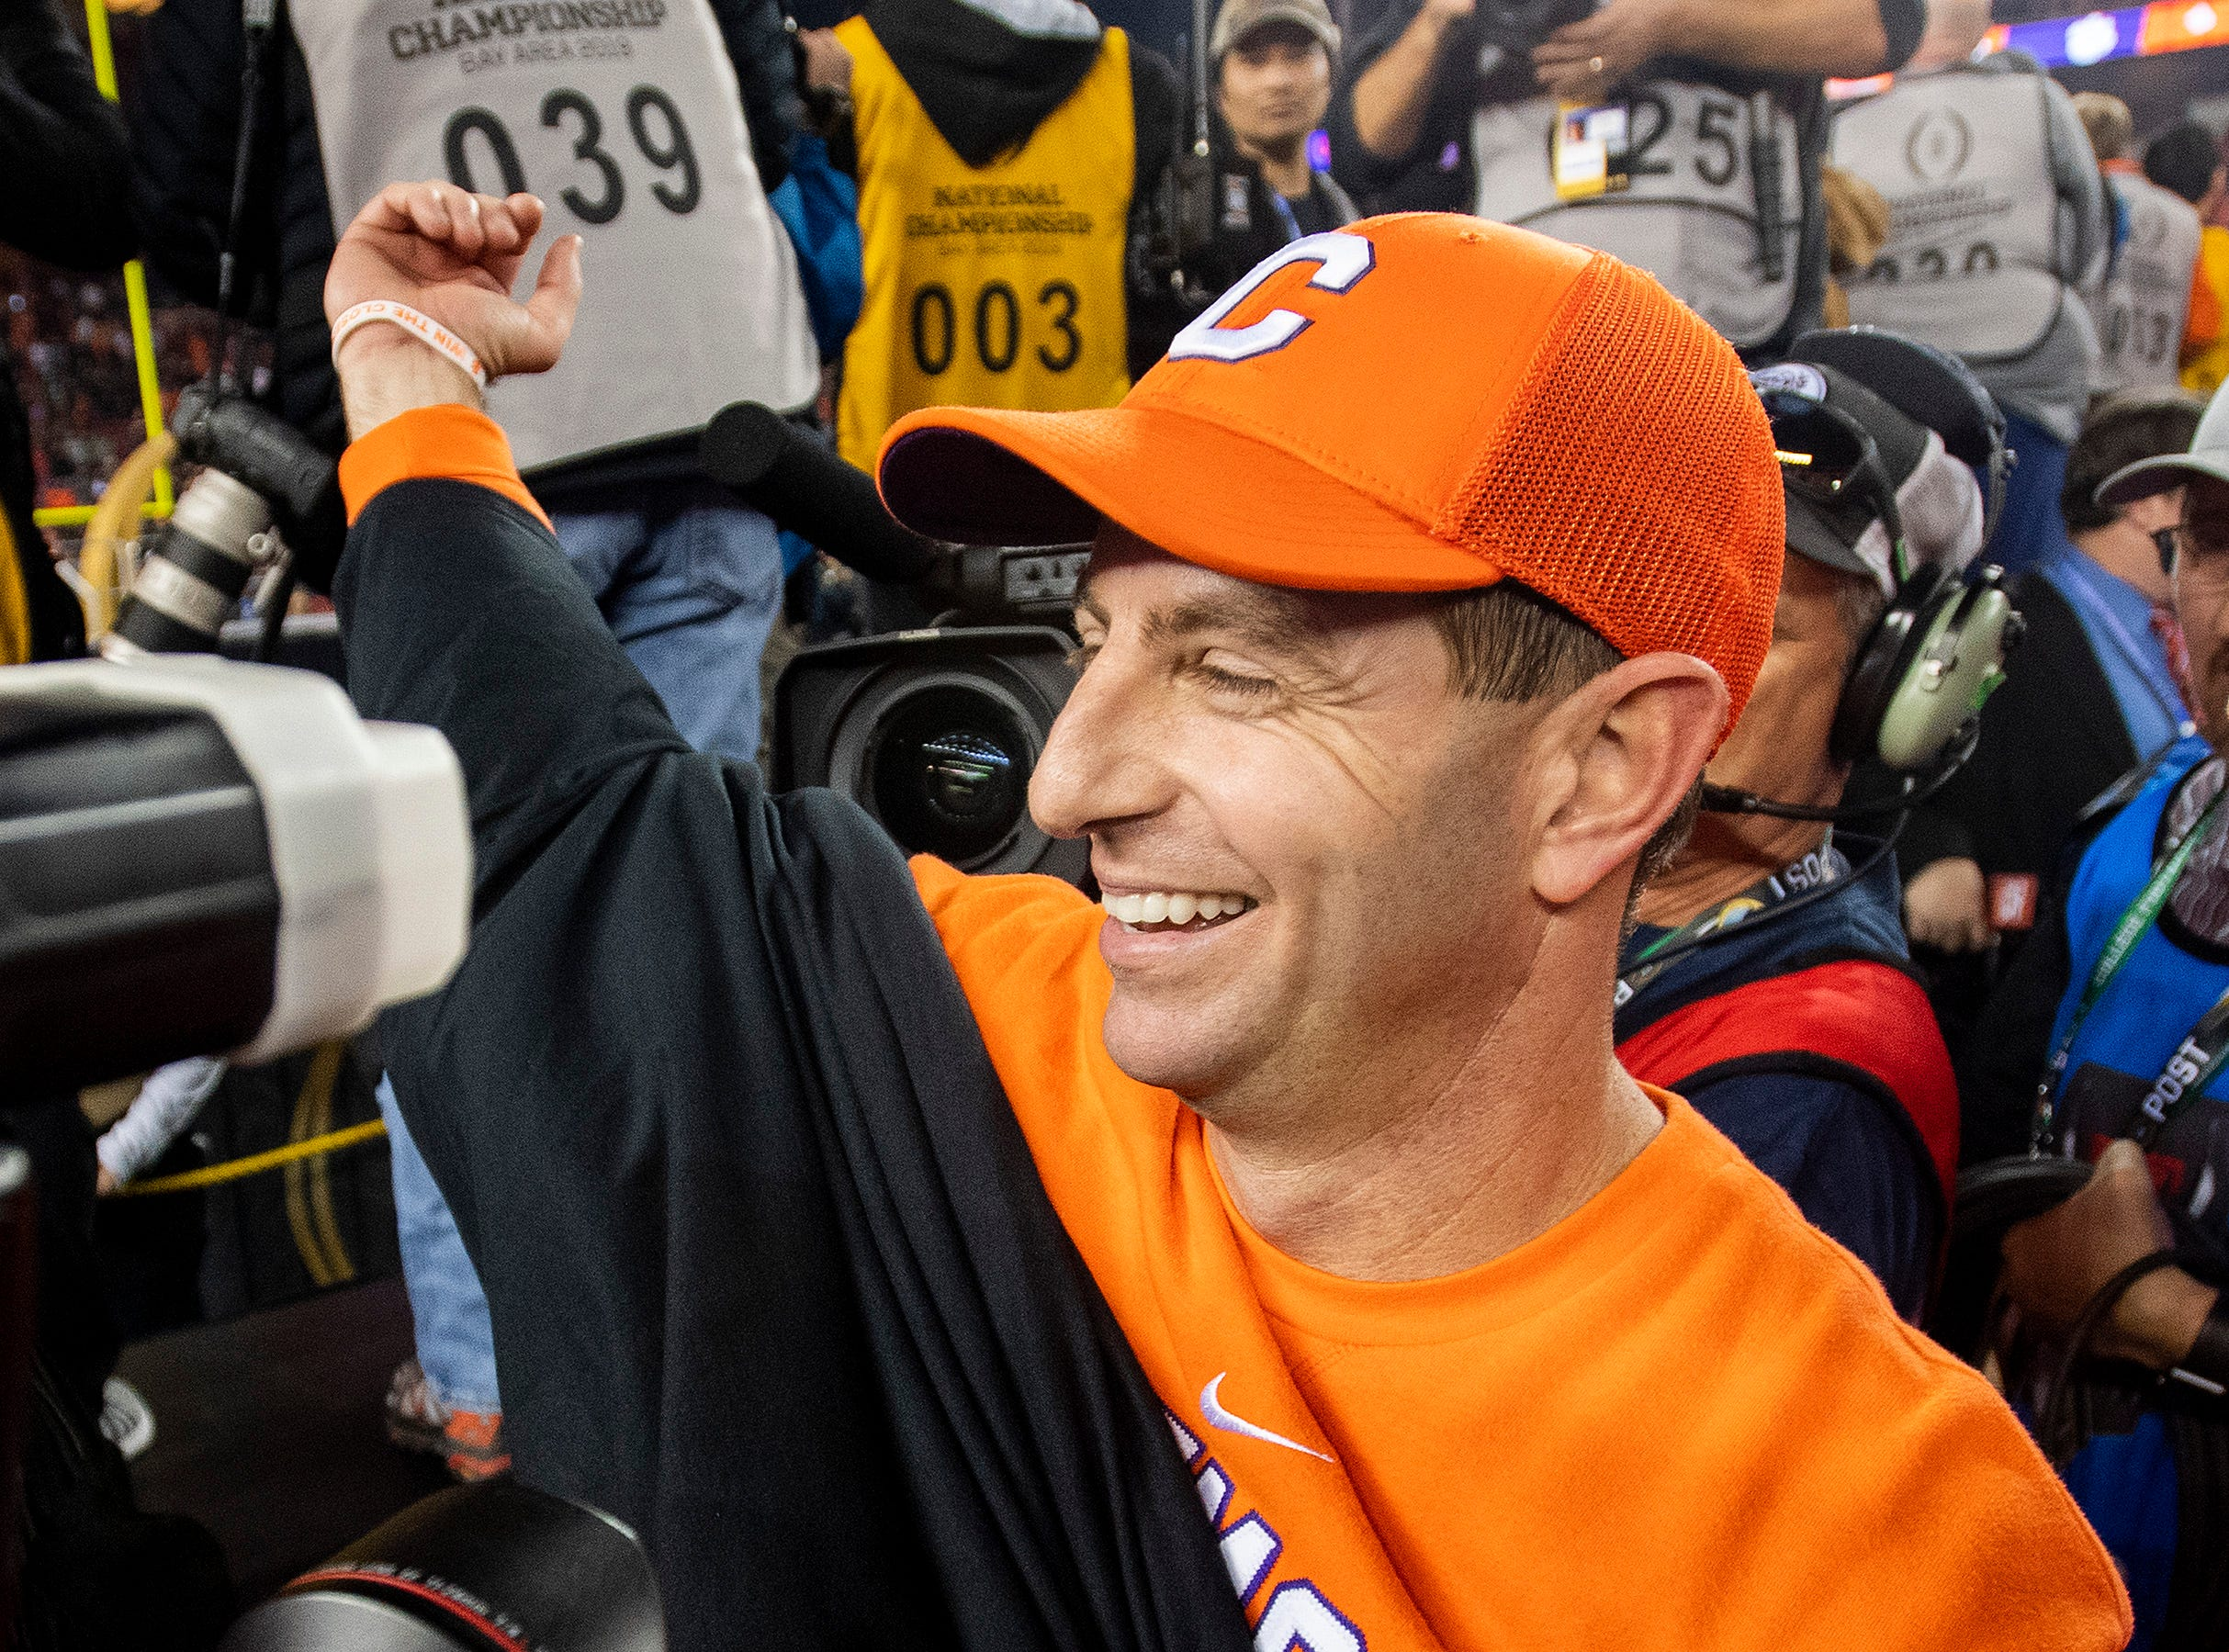 Clemson head coach Dabo Swinney puts on a national championship t-shirt after defeating Alabama in the College Football Playoff National Championship game at Levi's Stadium in Santa Clara, Ca., on Monday January 7, 2019.